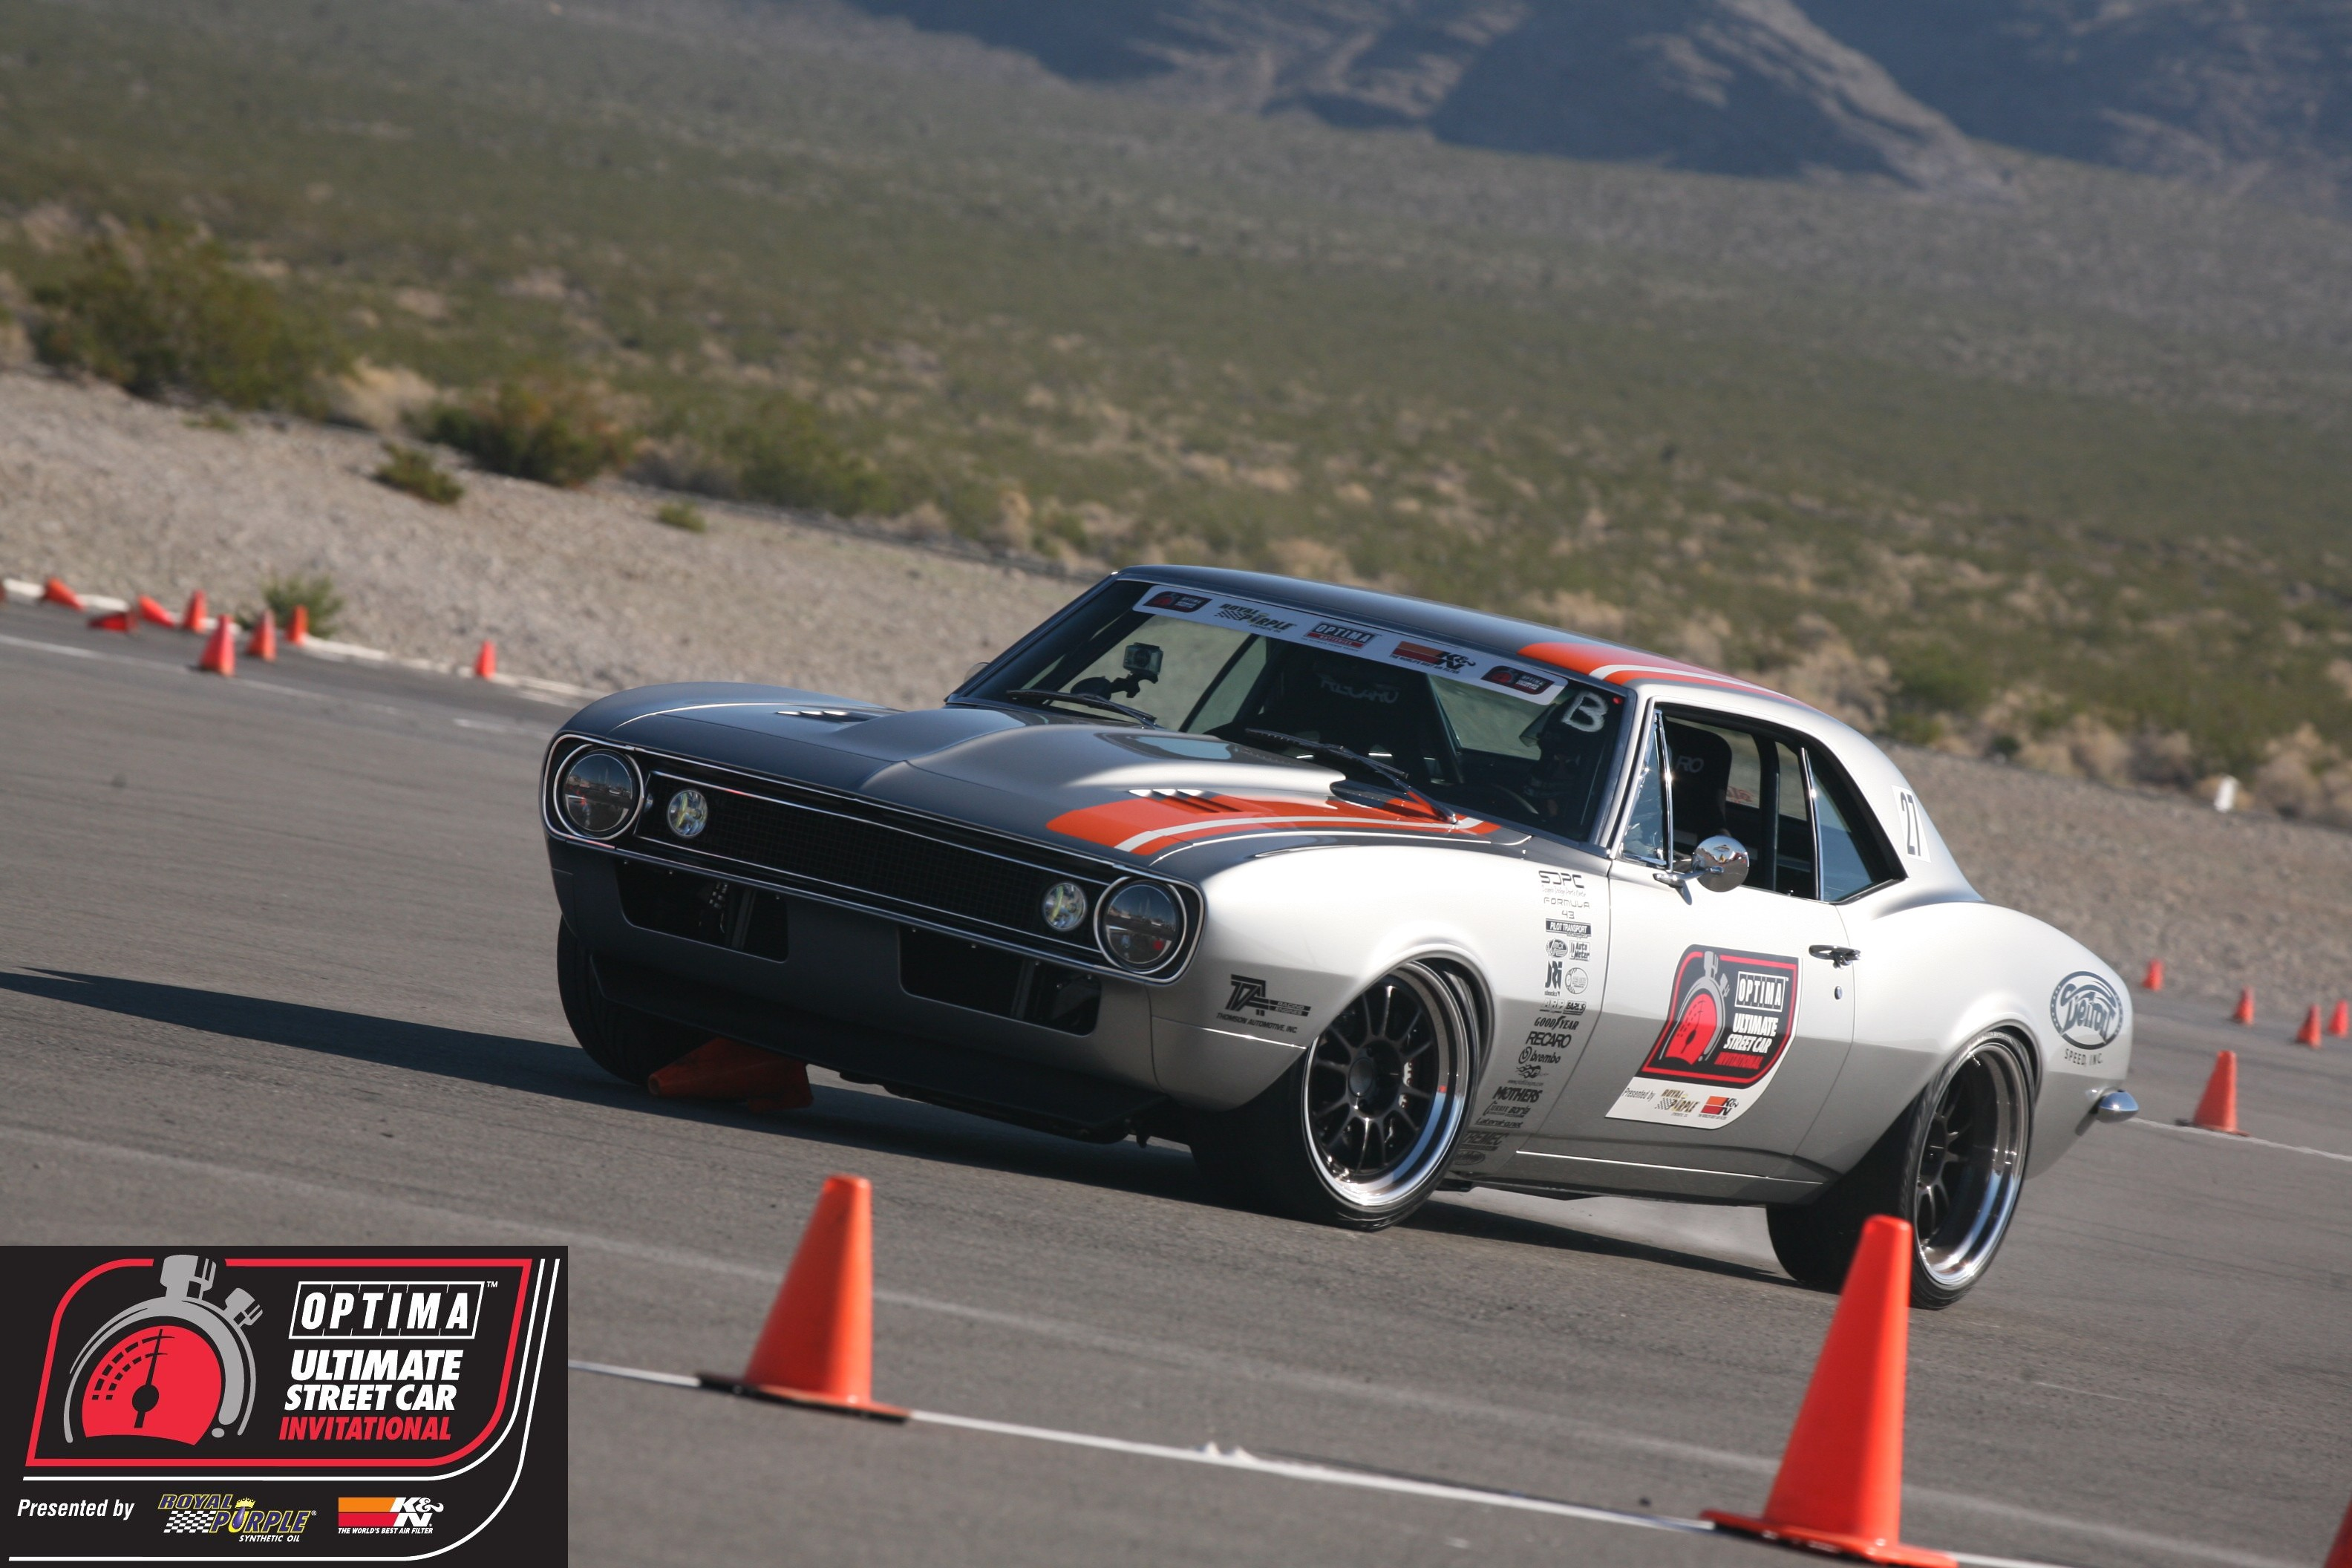 Congratulations to Mark Stielow on winning the RideTech Autocross at the 2012 OUSCI